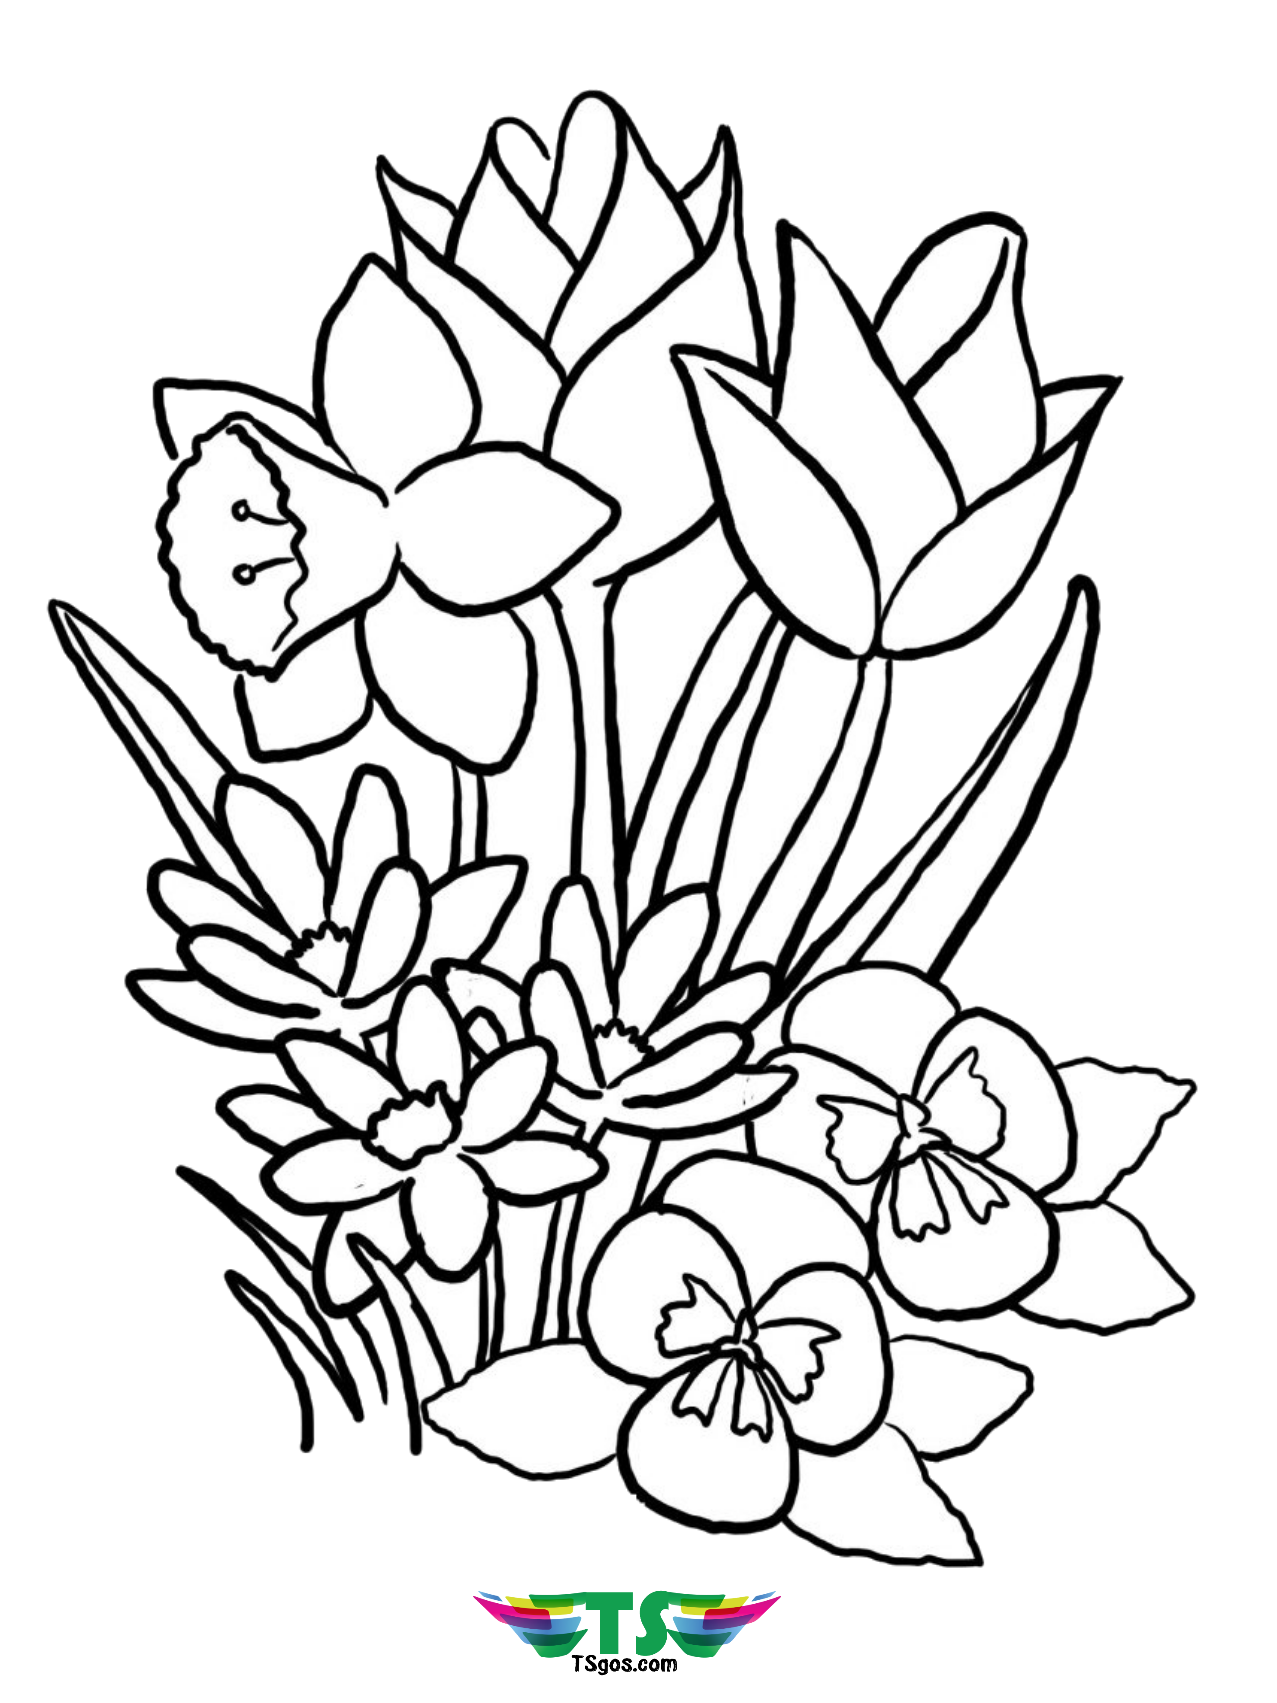 printable flower pictures free rainforest coloring pages flower printable pictures